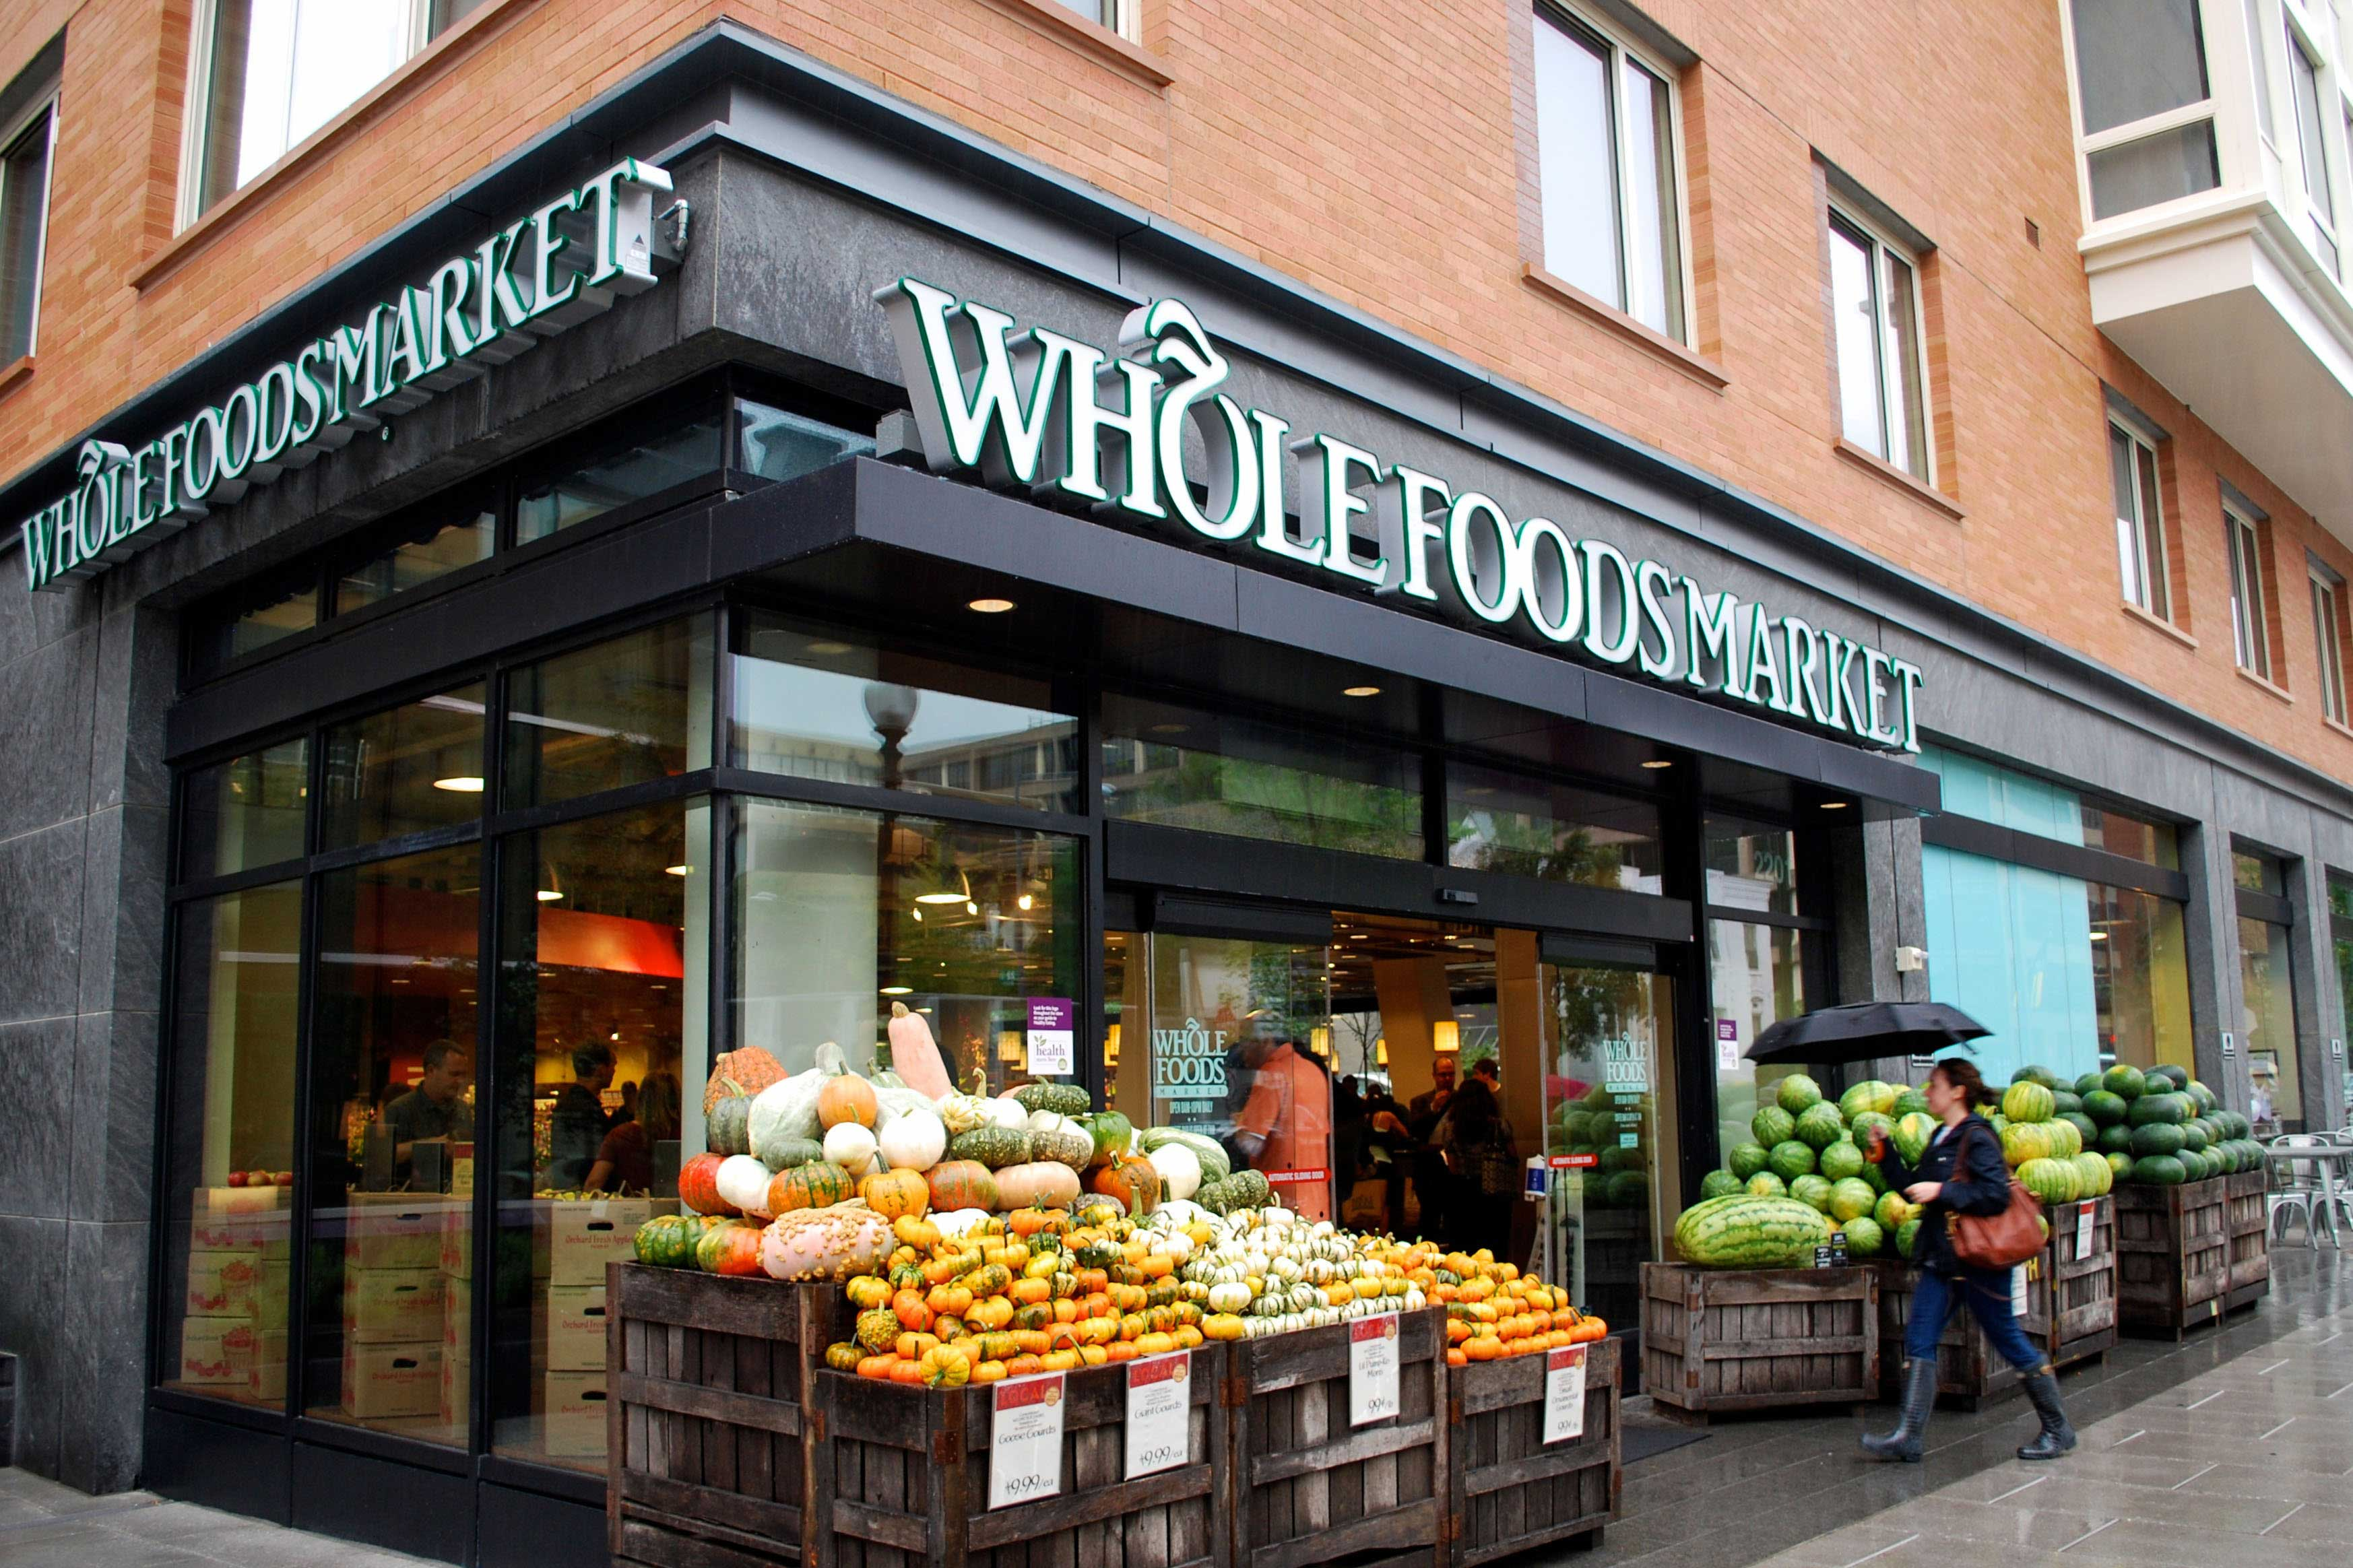 Location of whole food market